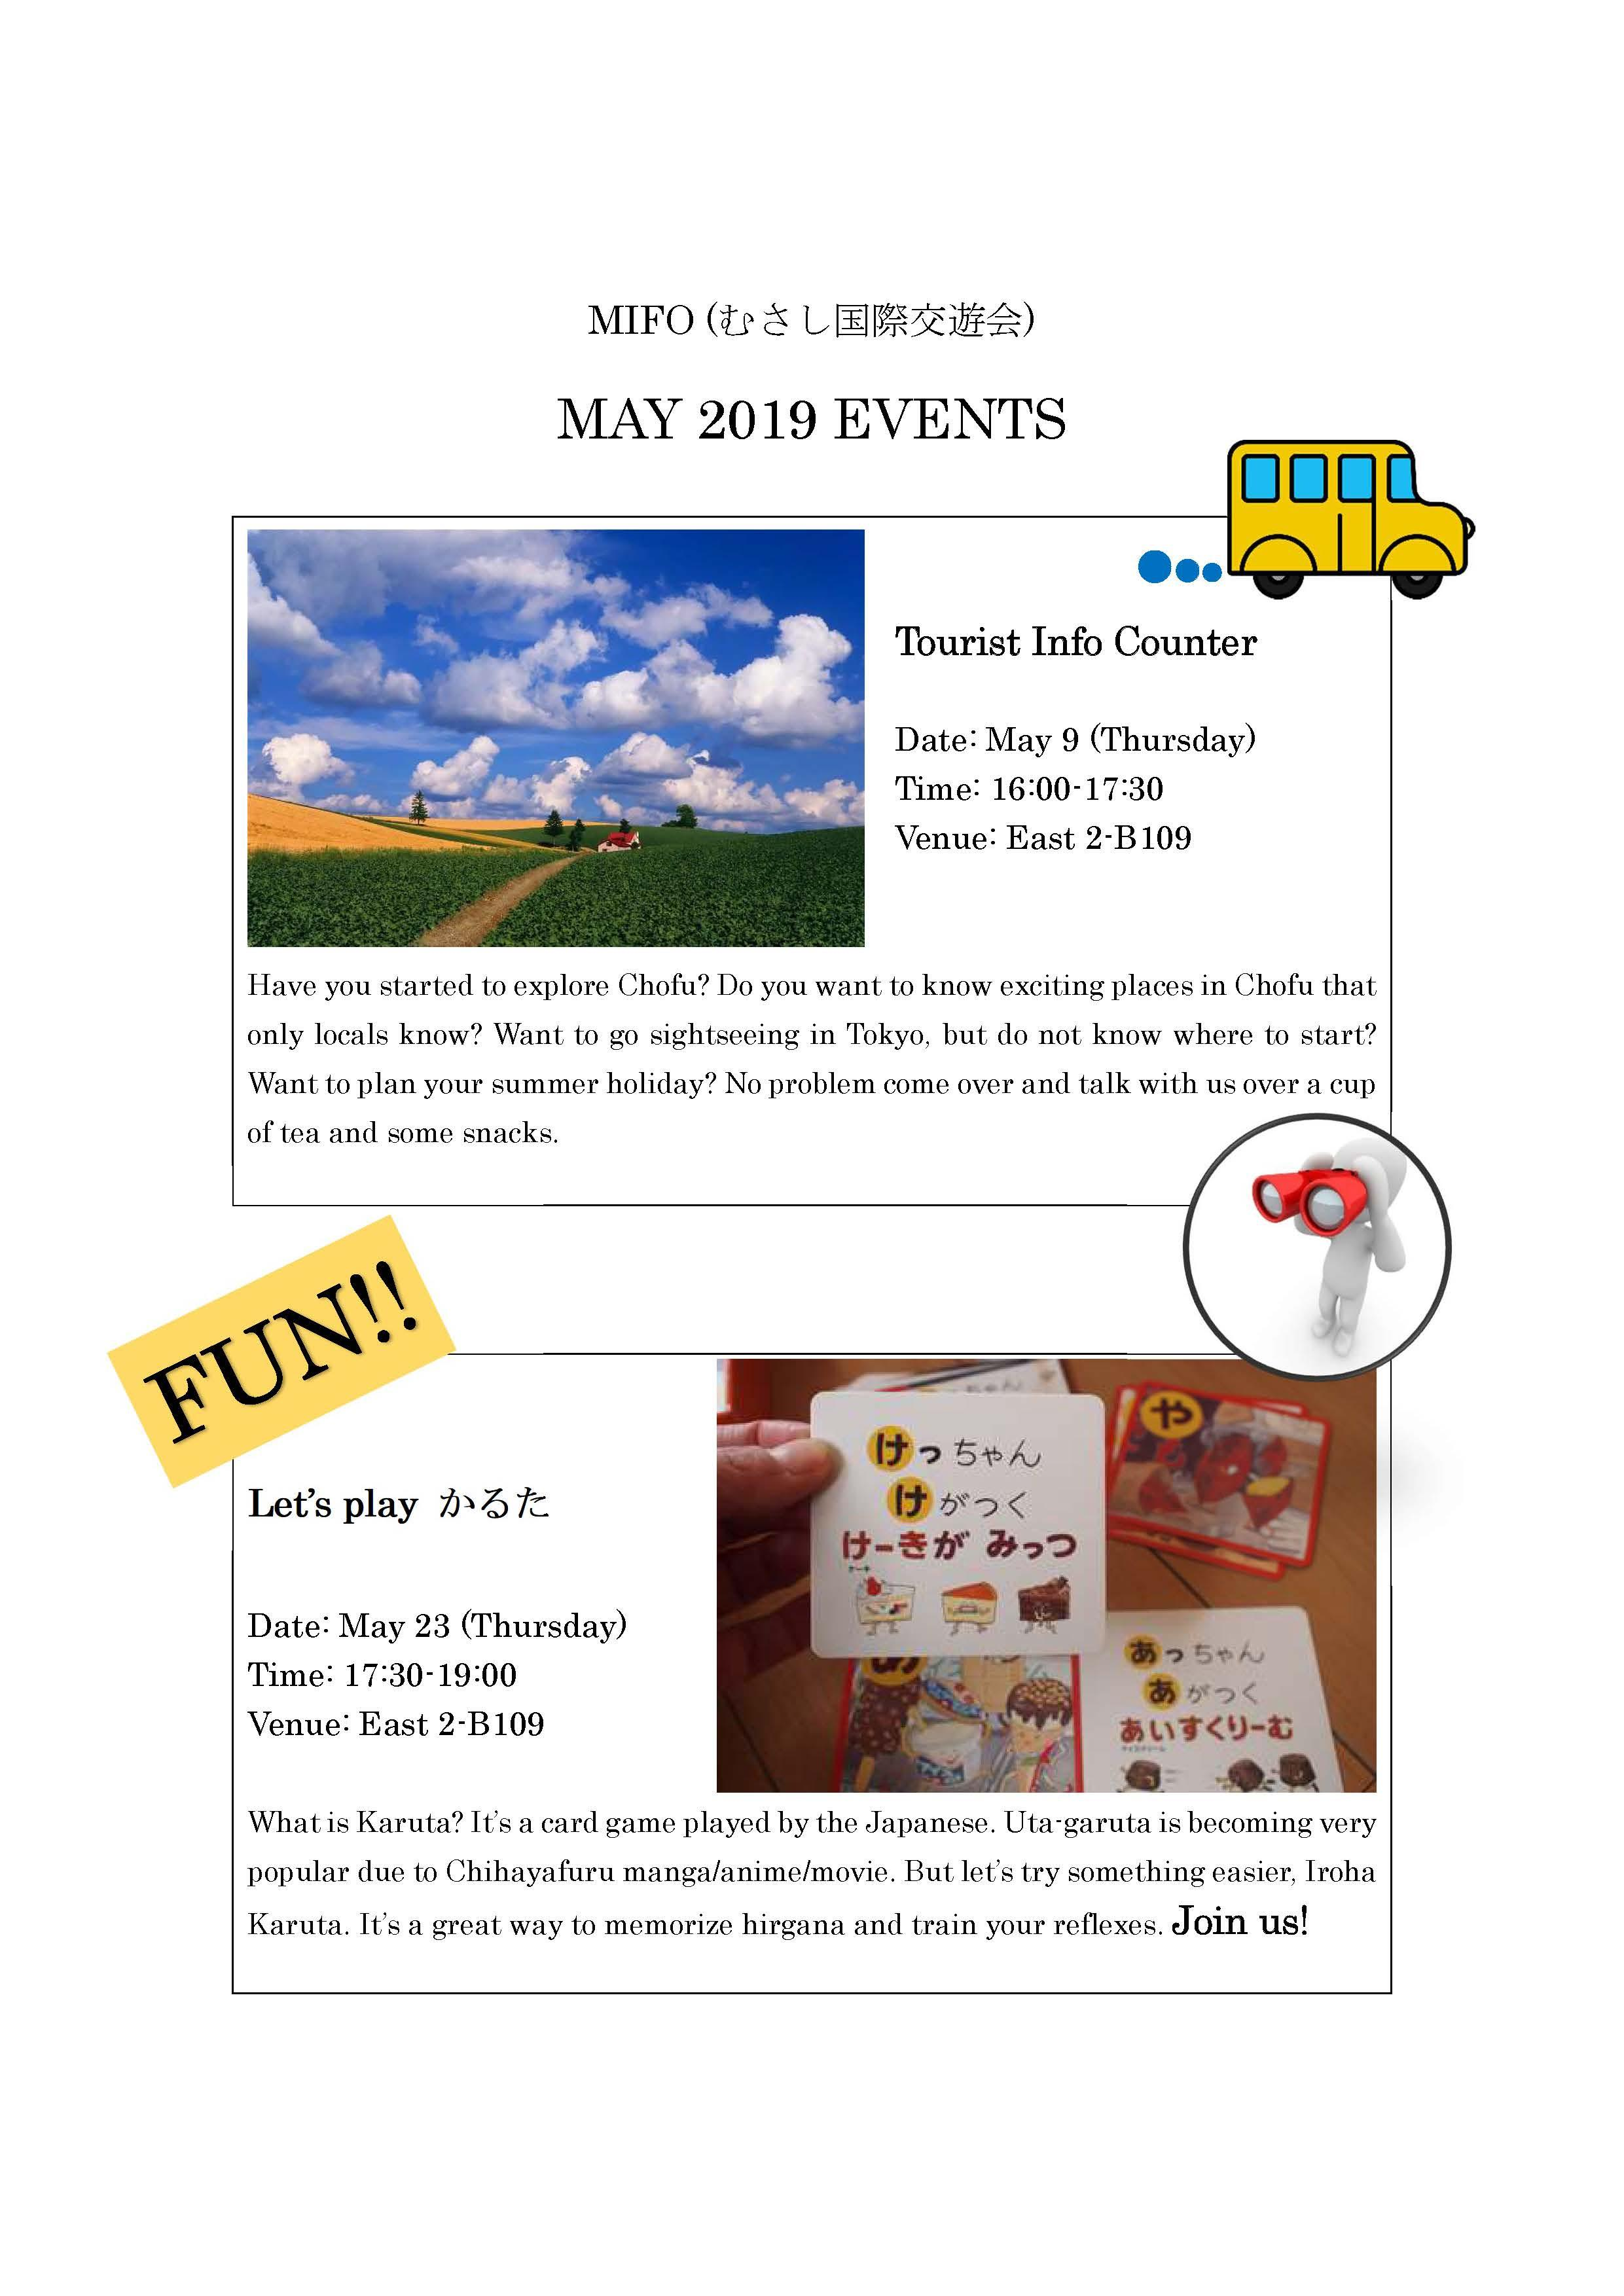 MIFO (むさし国際交遊会)MAY 2019 EVENTS- Current Students